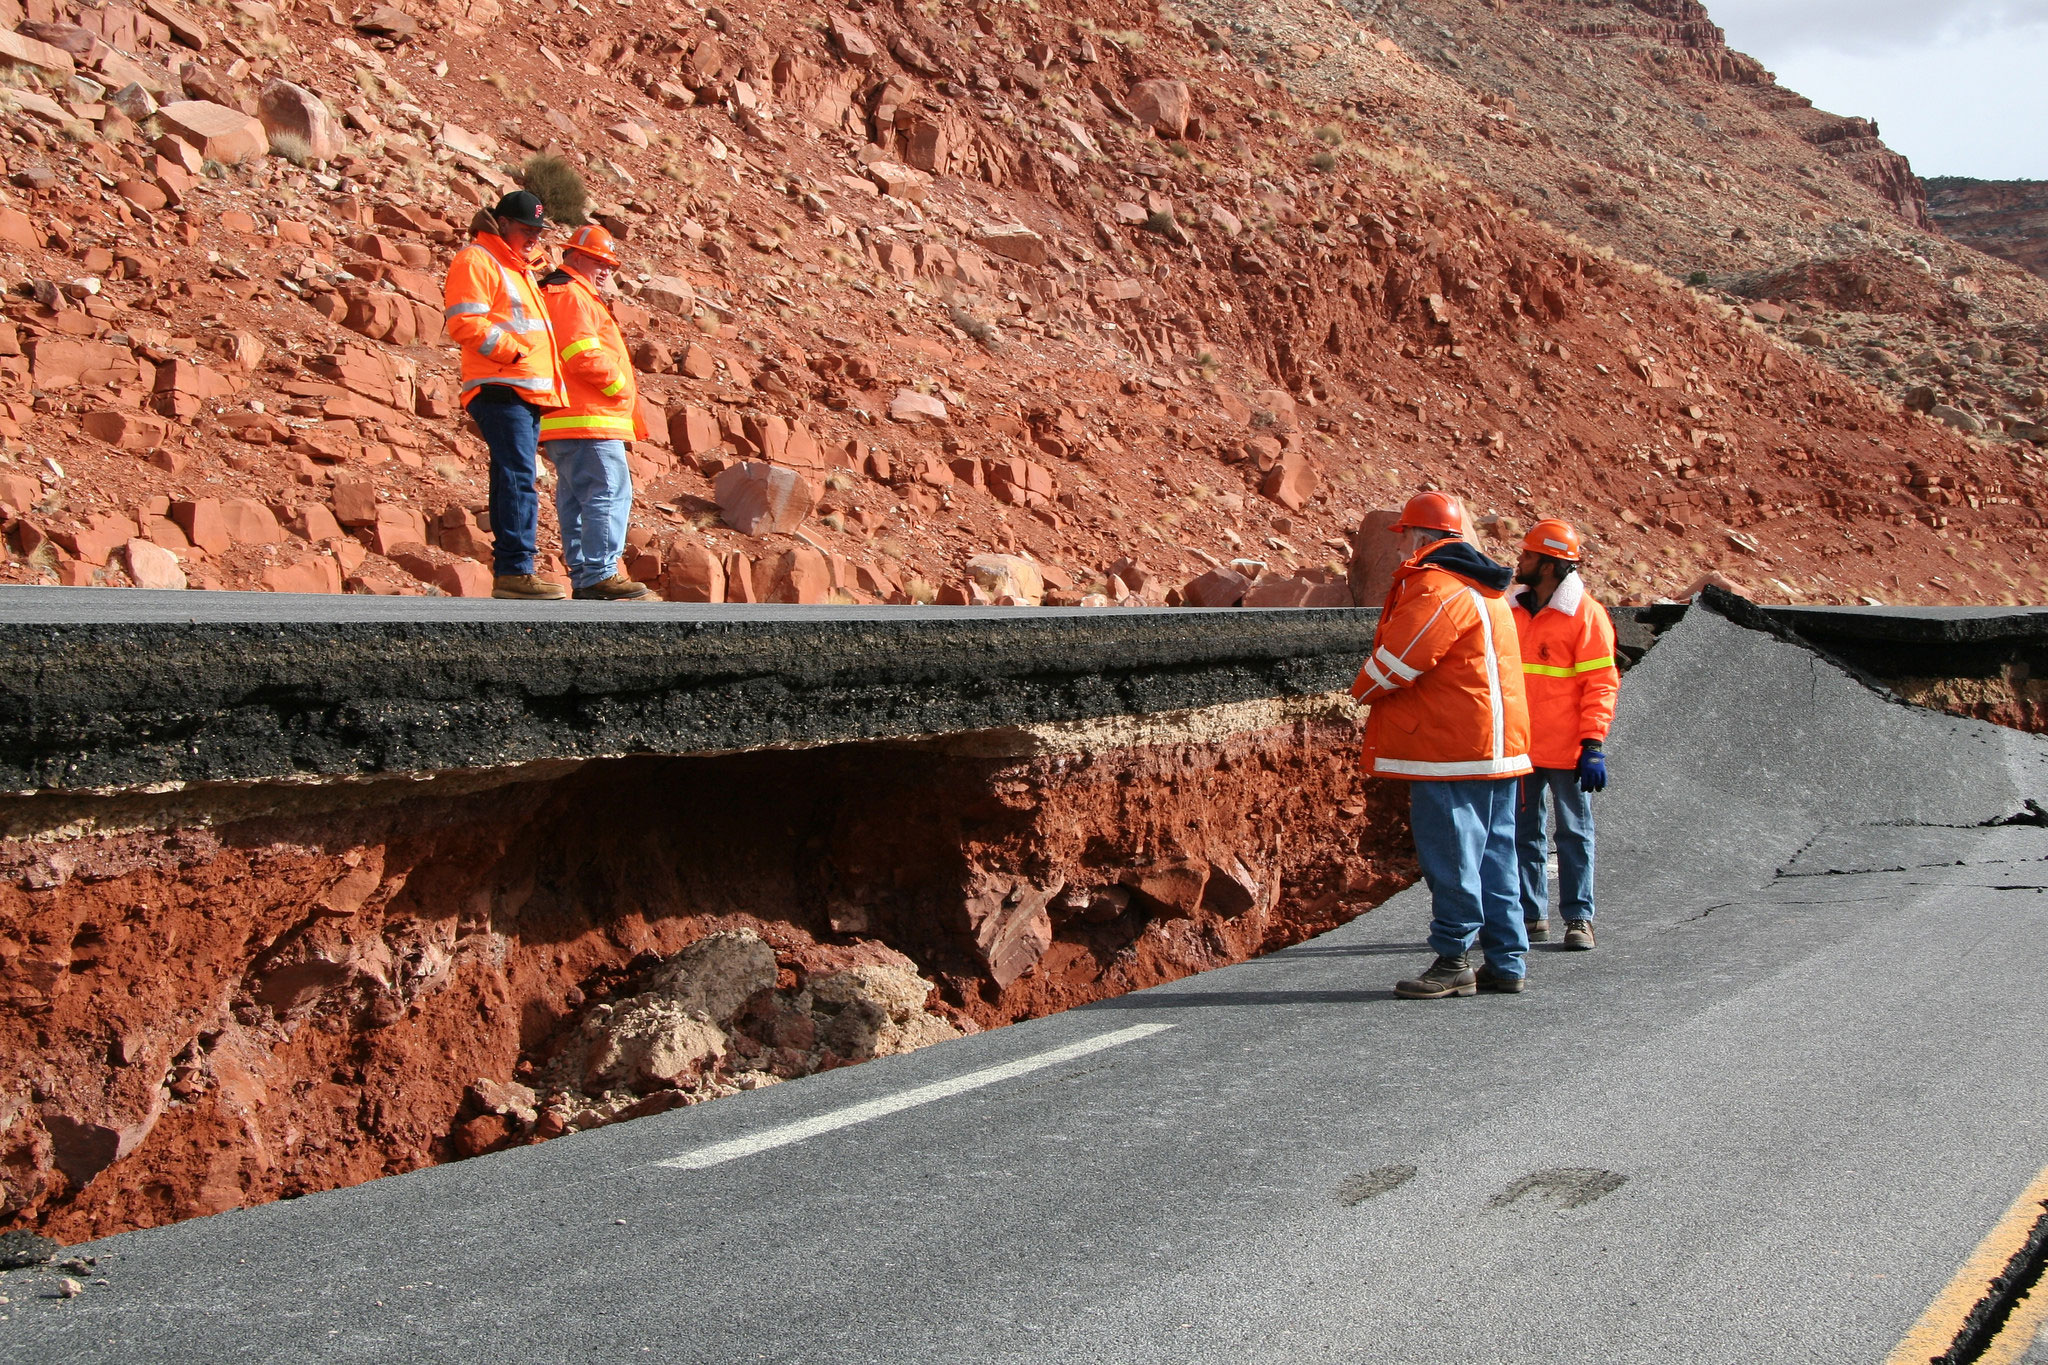 ADOT Engineers examine US 89 after landslide